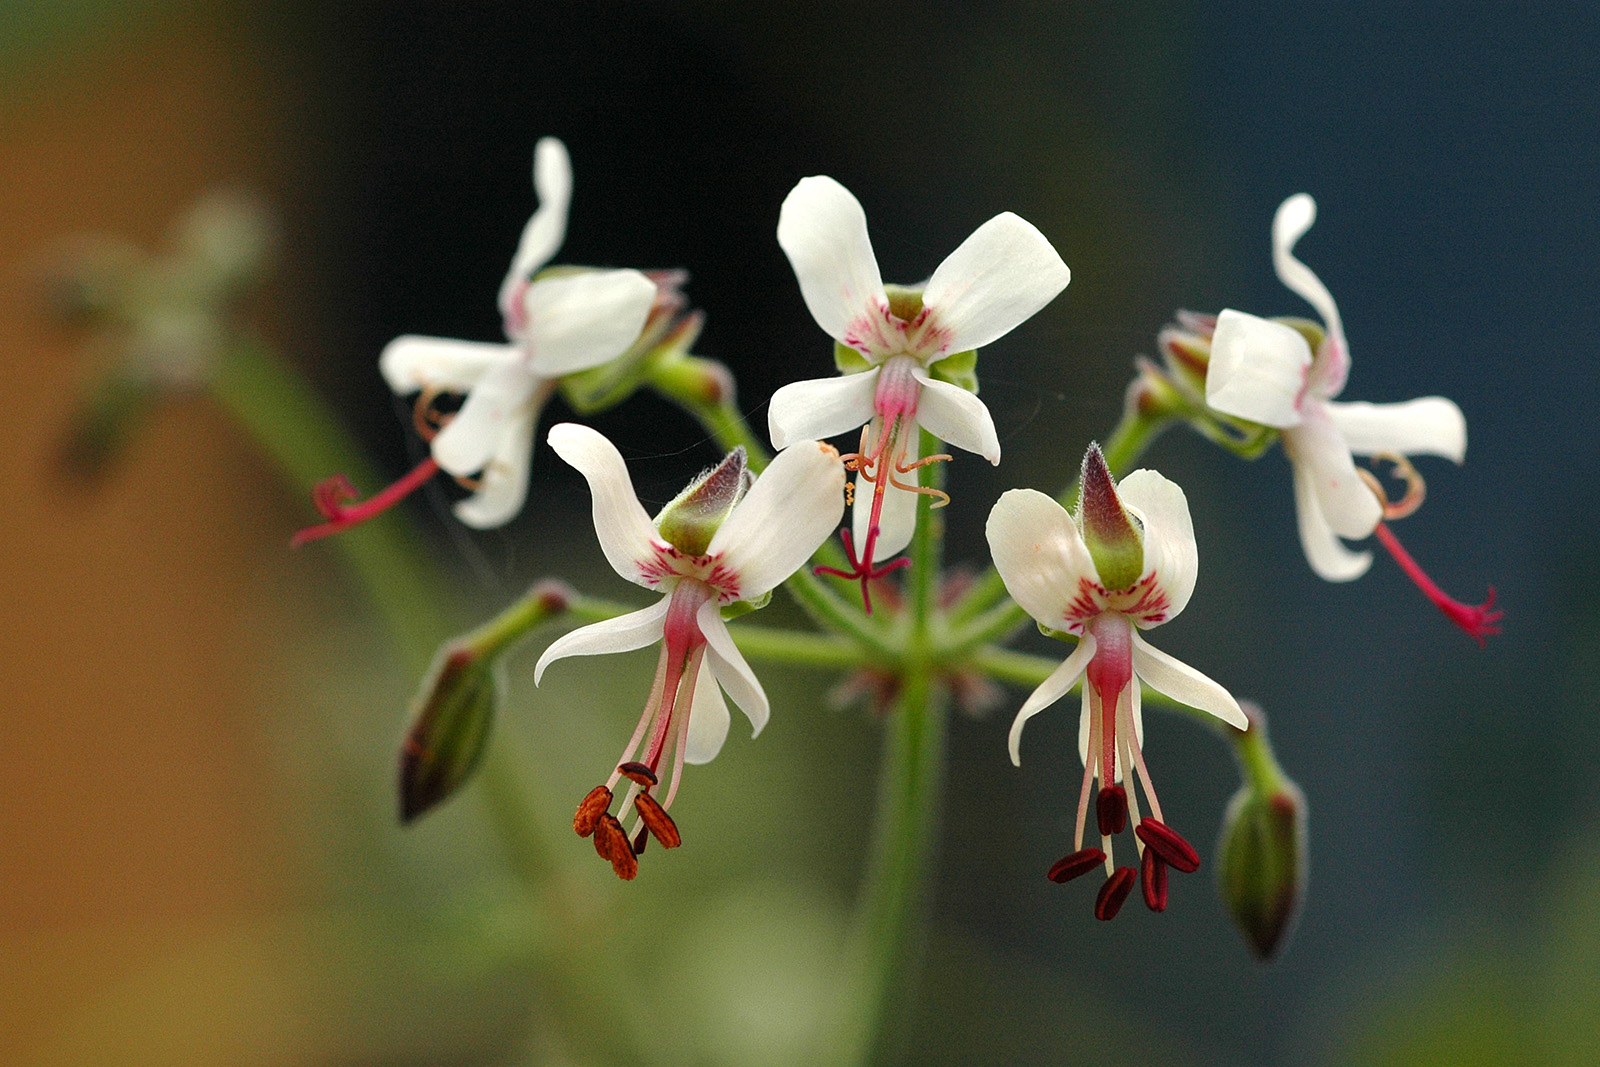 Flowers of <i>Pelargonium carnosum</i>